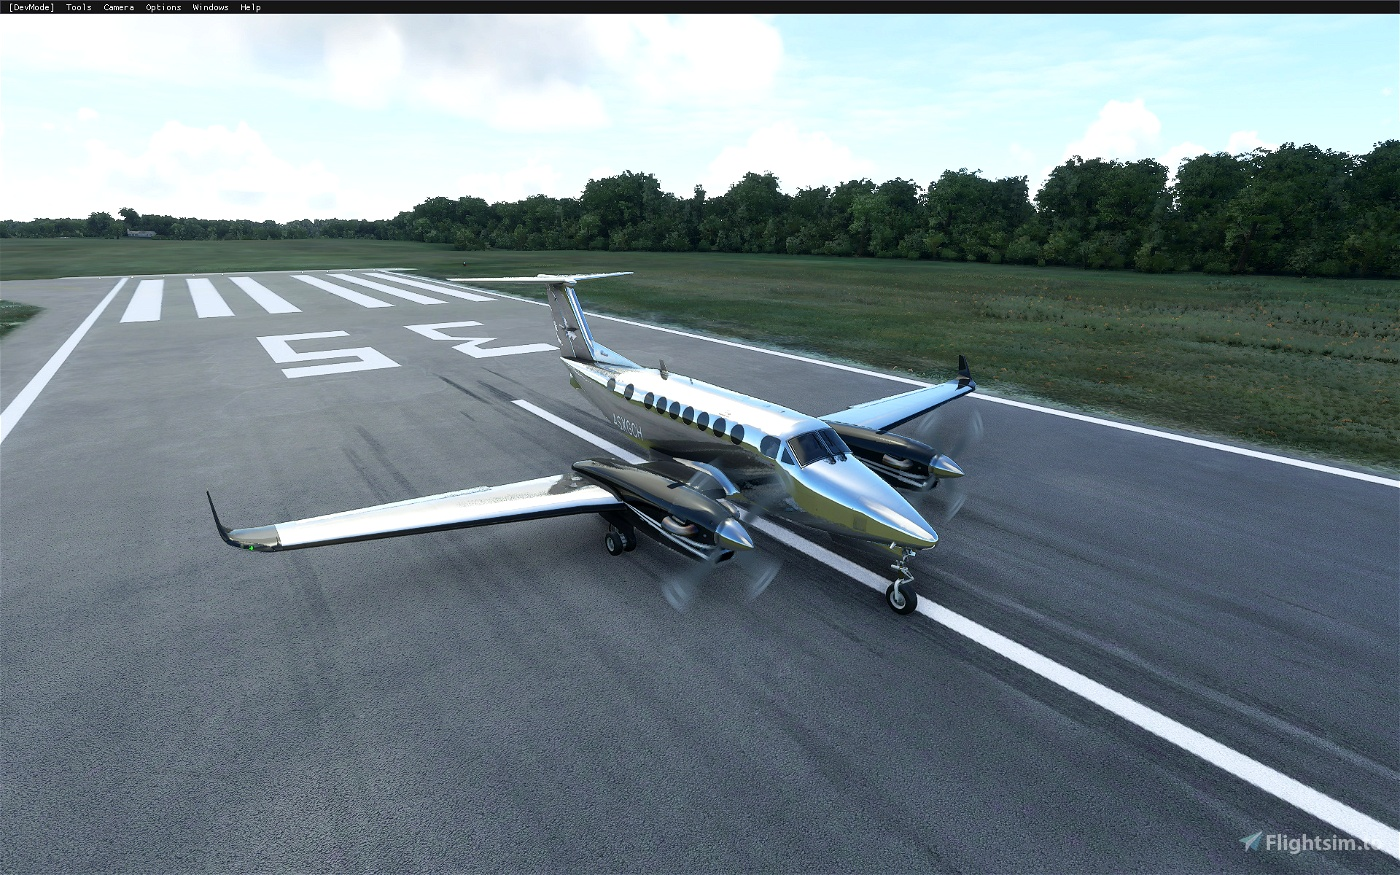 King Air 350i Metals and Alternate Color Liveries (8 total) Image Flight Simulator 2020